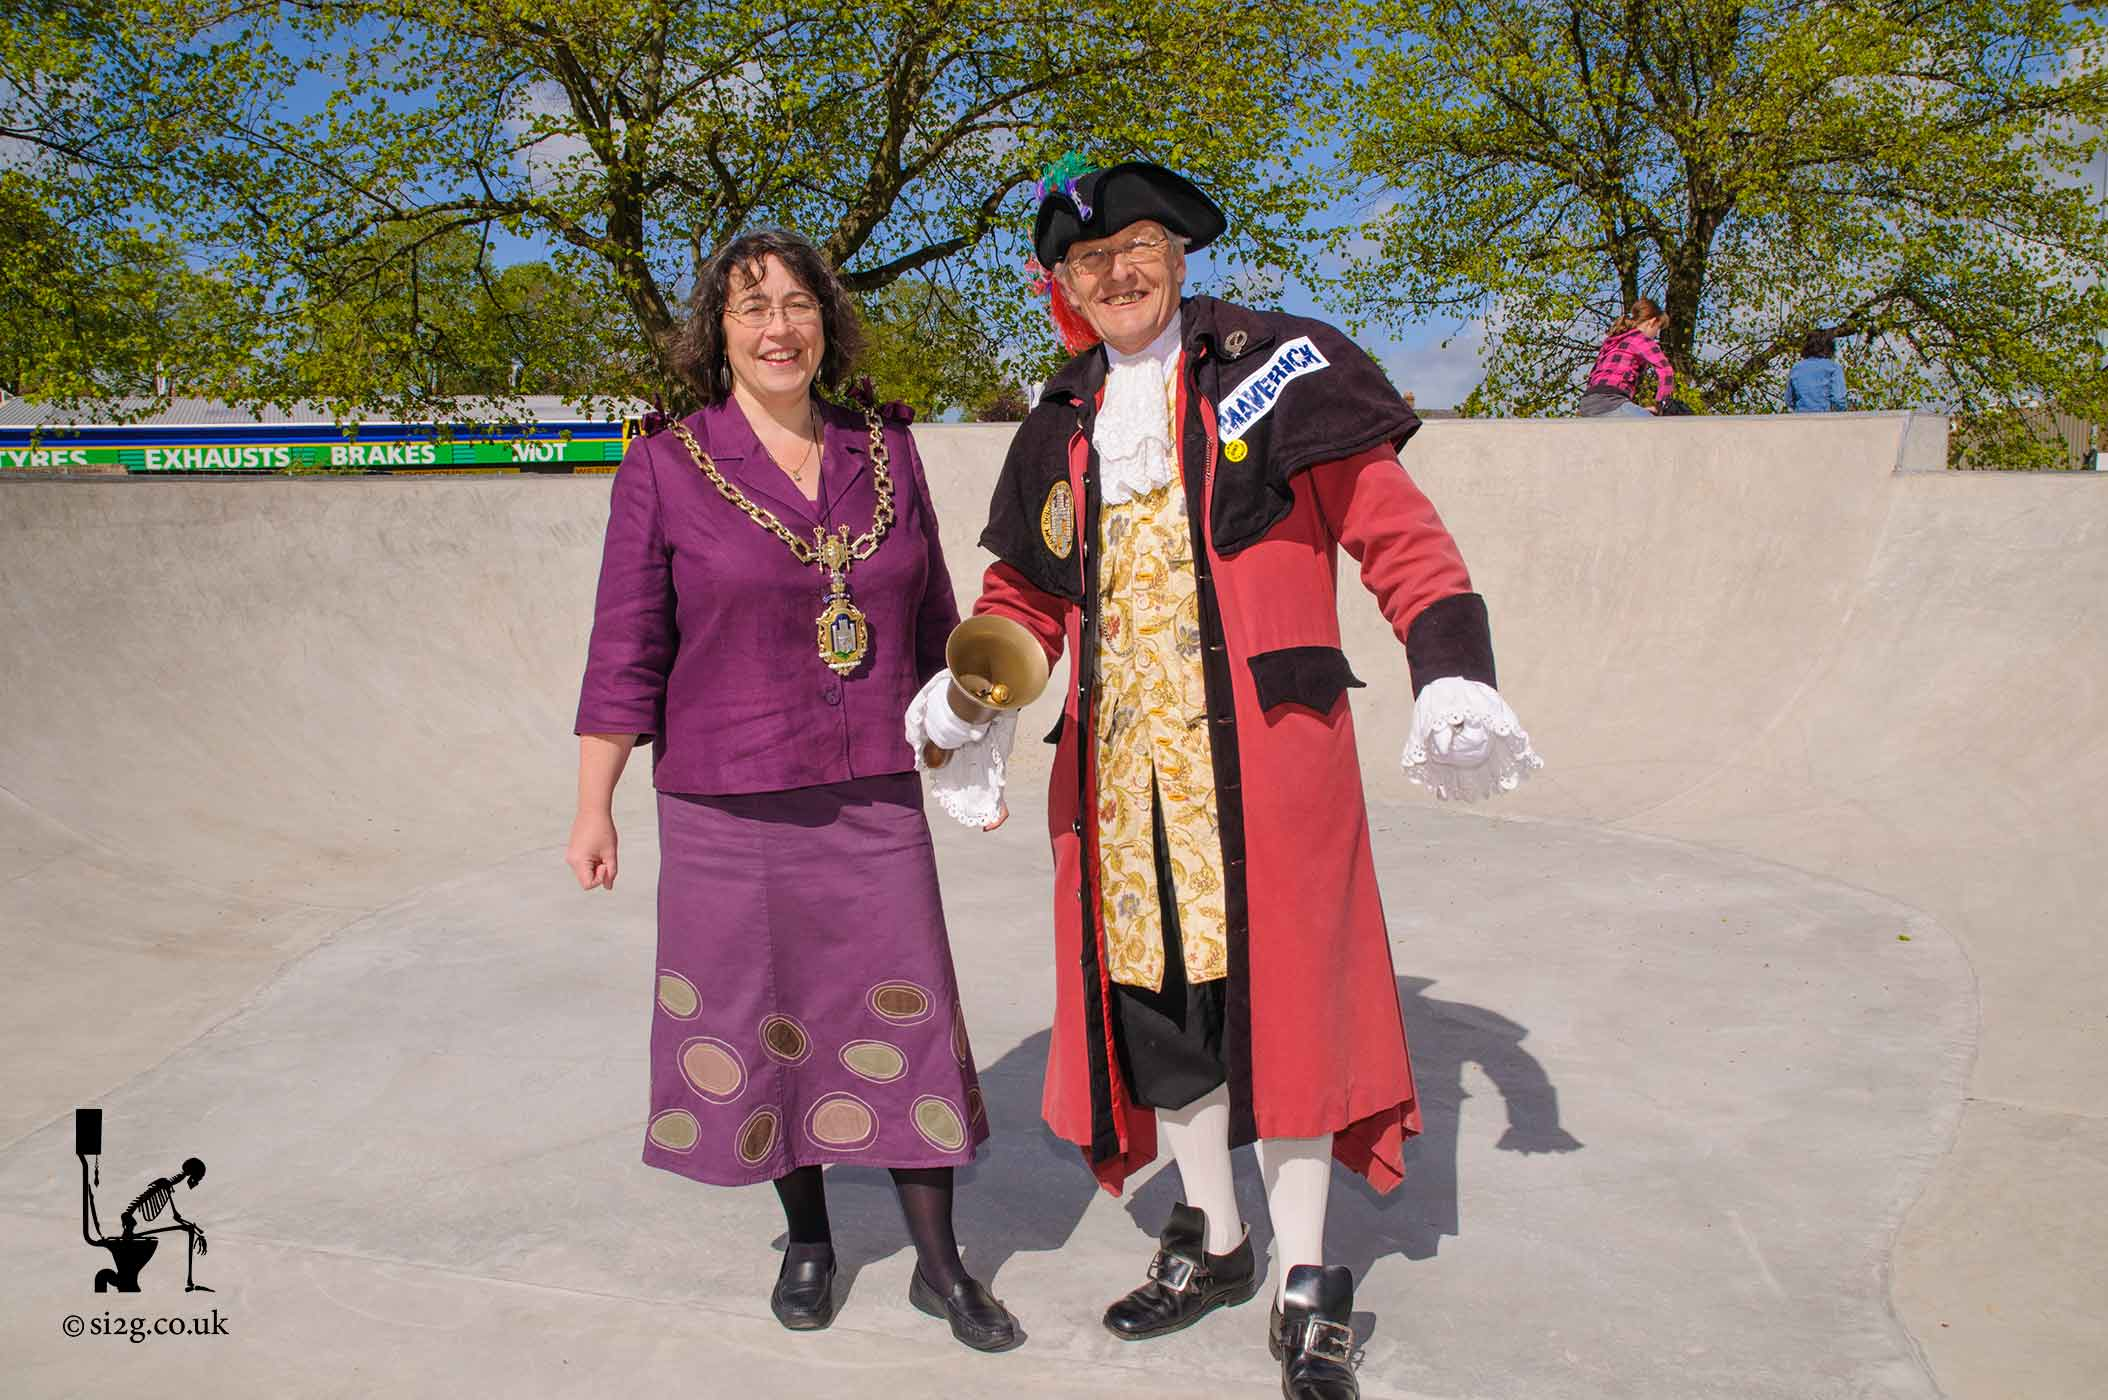 Mayor and Town Crier - The Mayor of Dorchester and the Tower Crier at the official opening of Dorchester Skatepark.